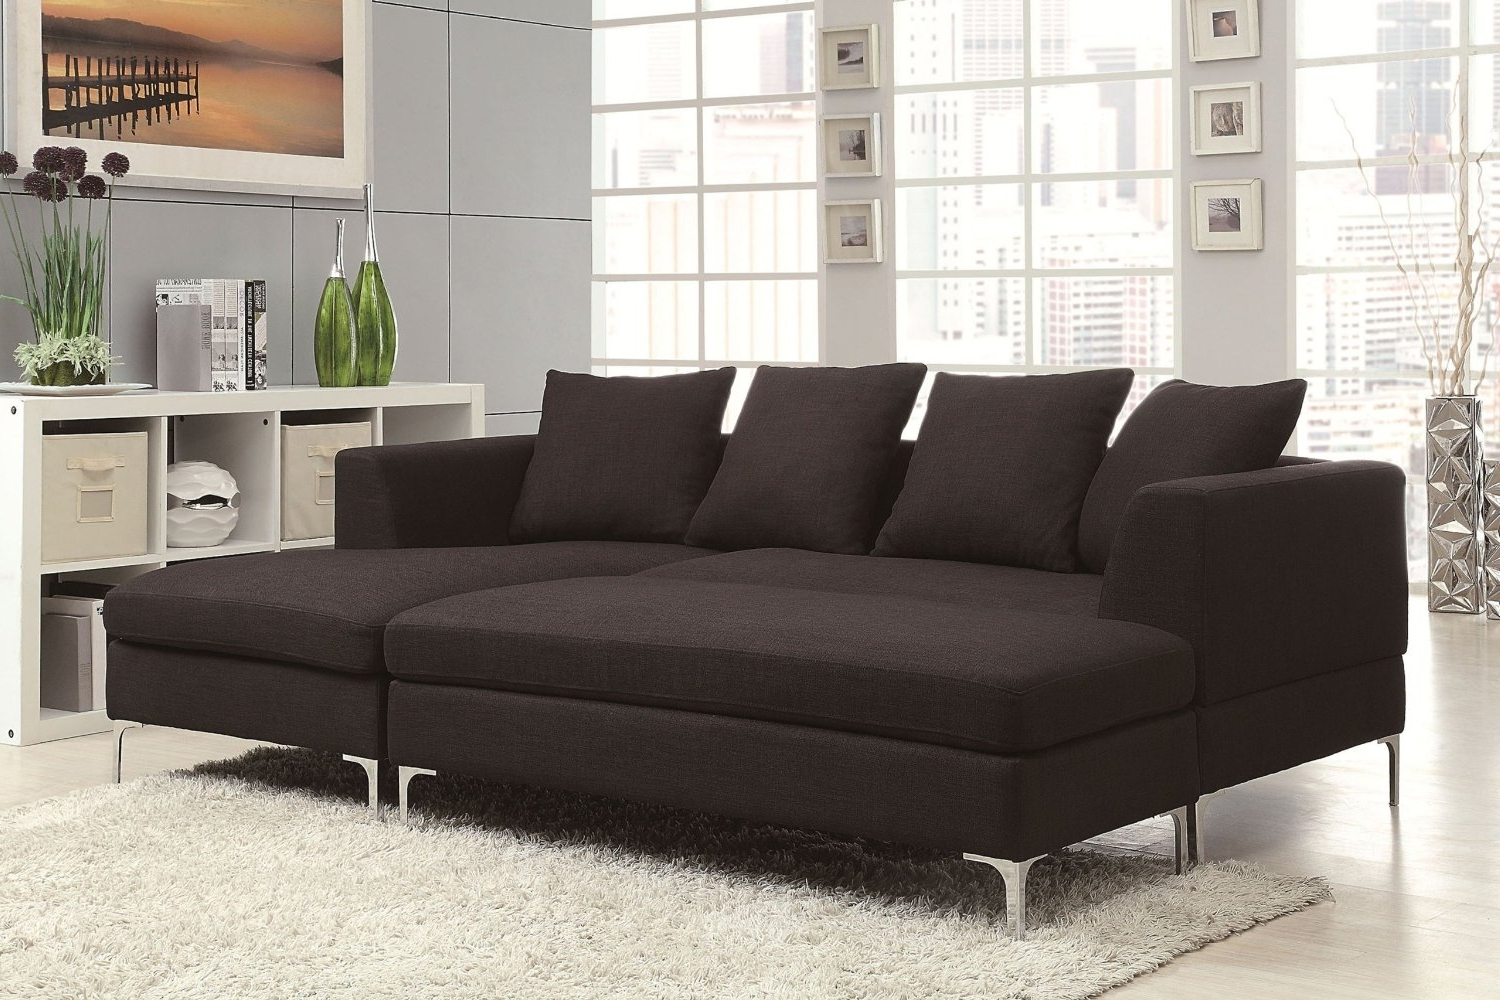 Sectionals With Chaise Throughout Well Known Sofa : Modular Sofa Reclining Sectional With Chaise Small (View 15 of 15)